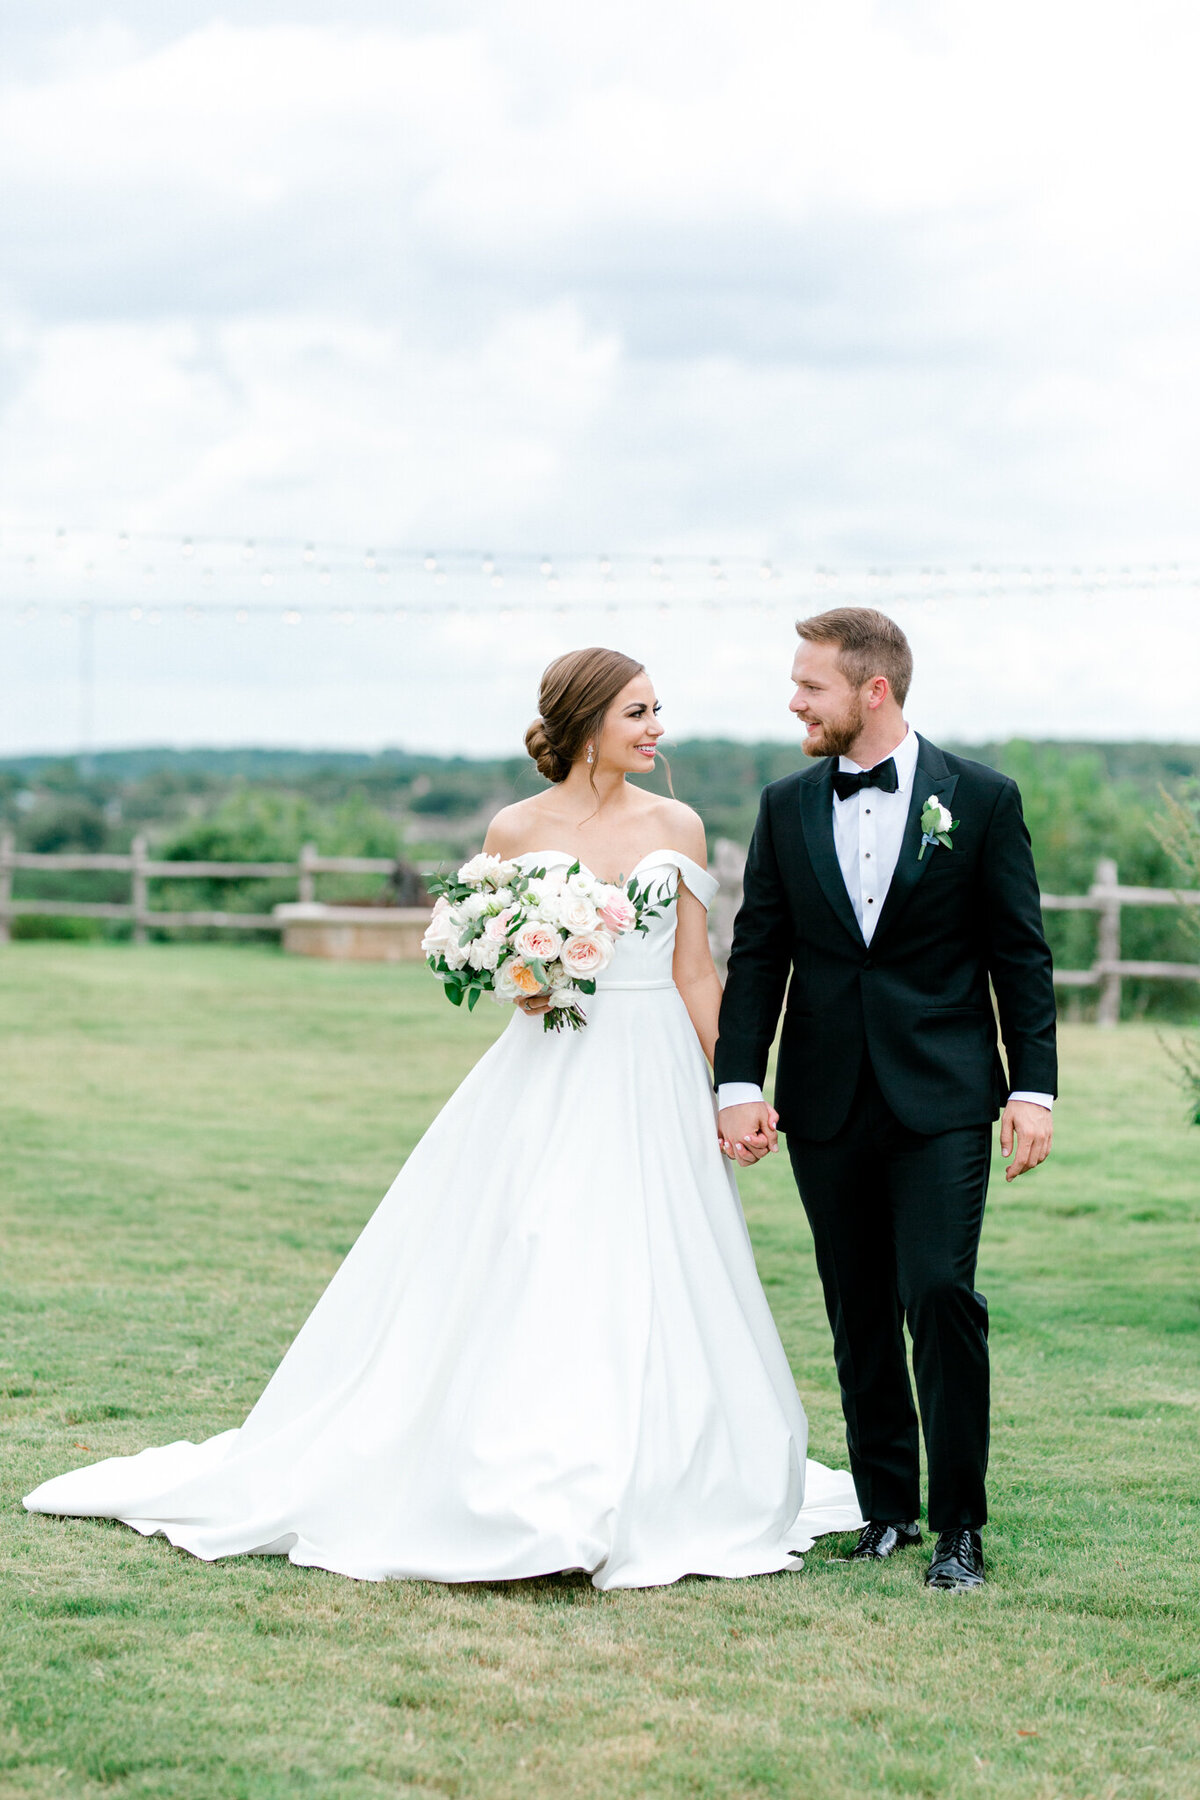 Lexi Broughton & Garrett Greer Wedding at Dove Ridge Vineyards | Sami Kathryn Photography | Dallas Wedding Photography-78